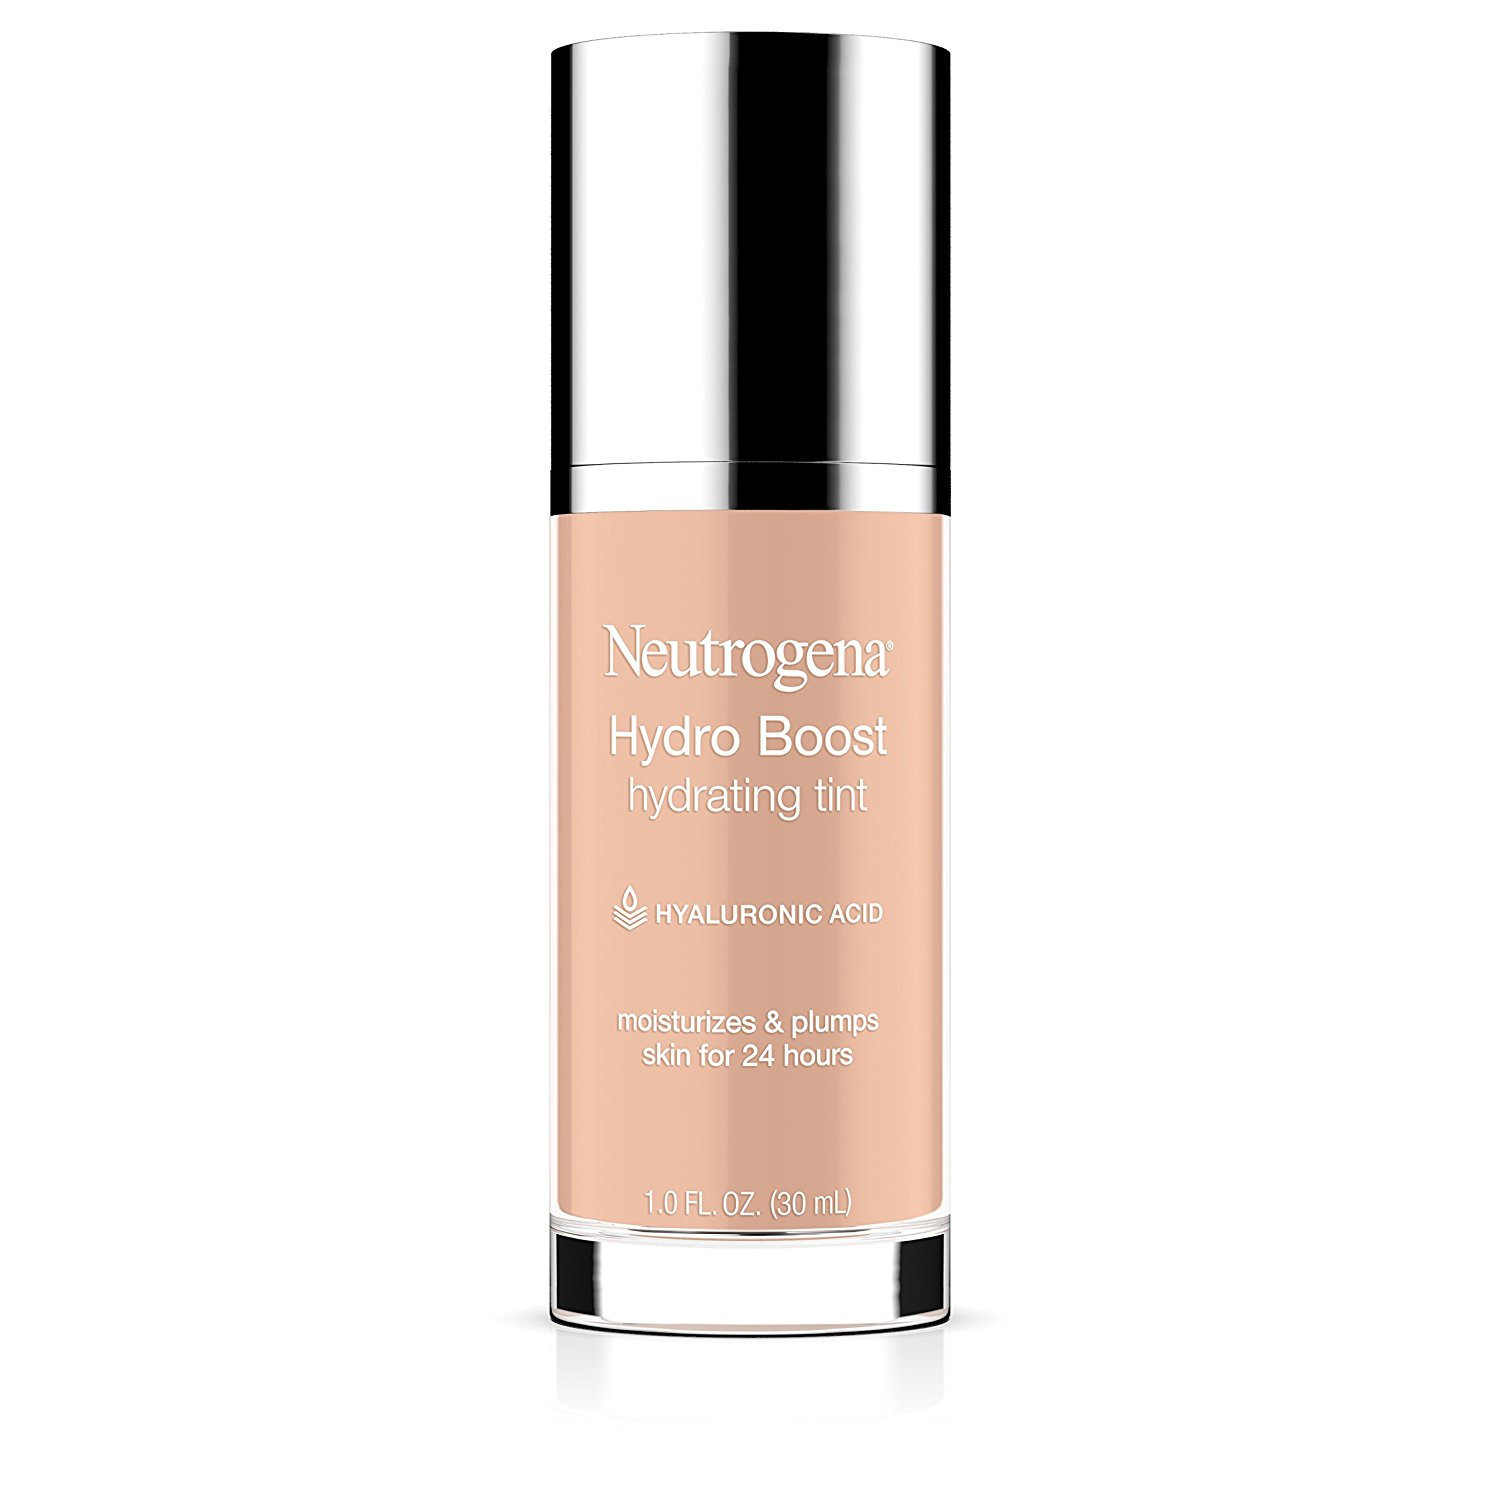 Best Neutrogena Makeup Products From